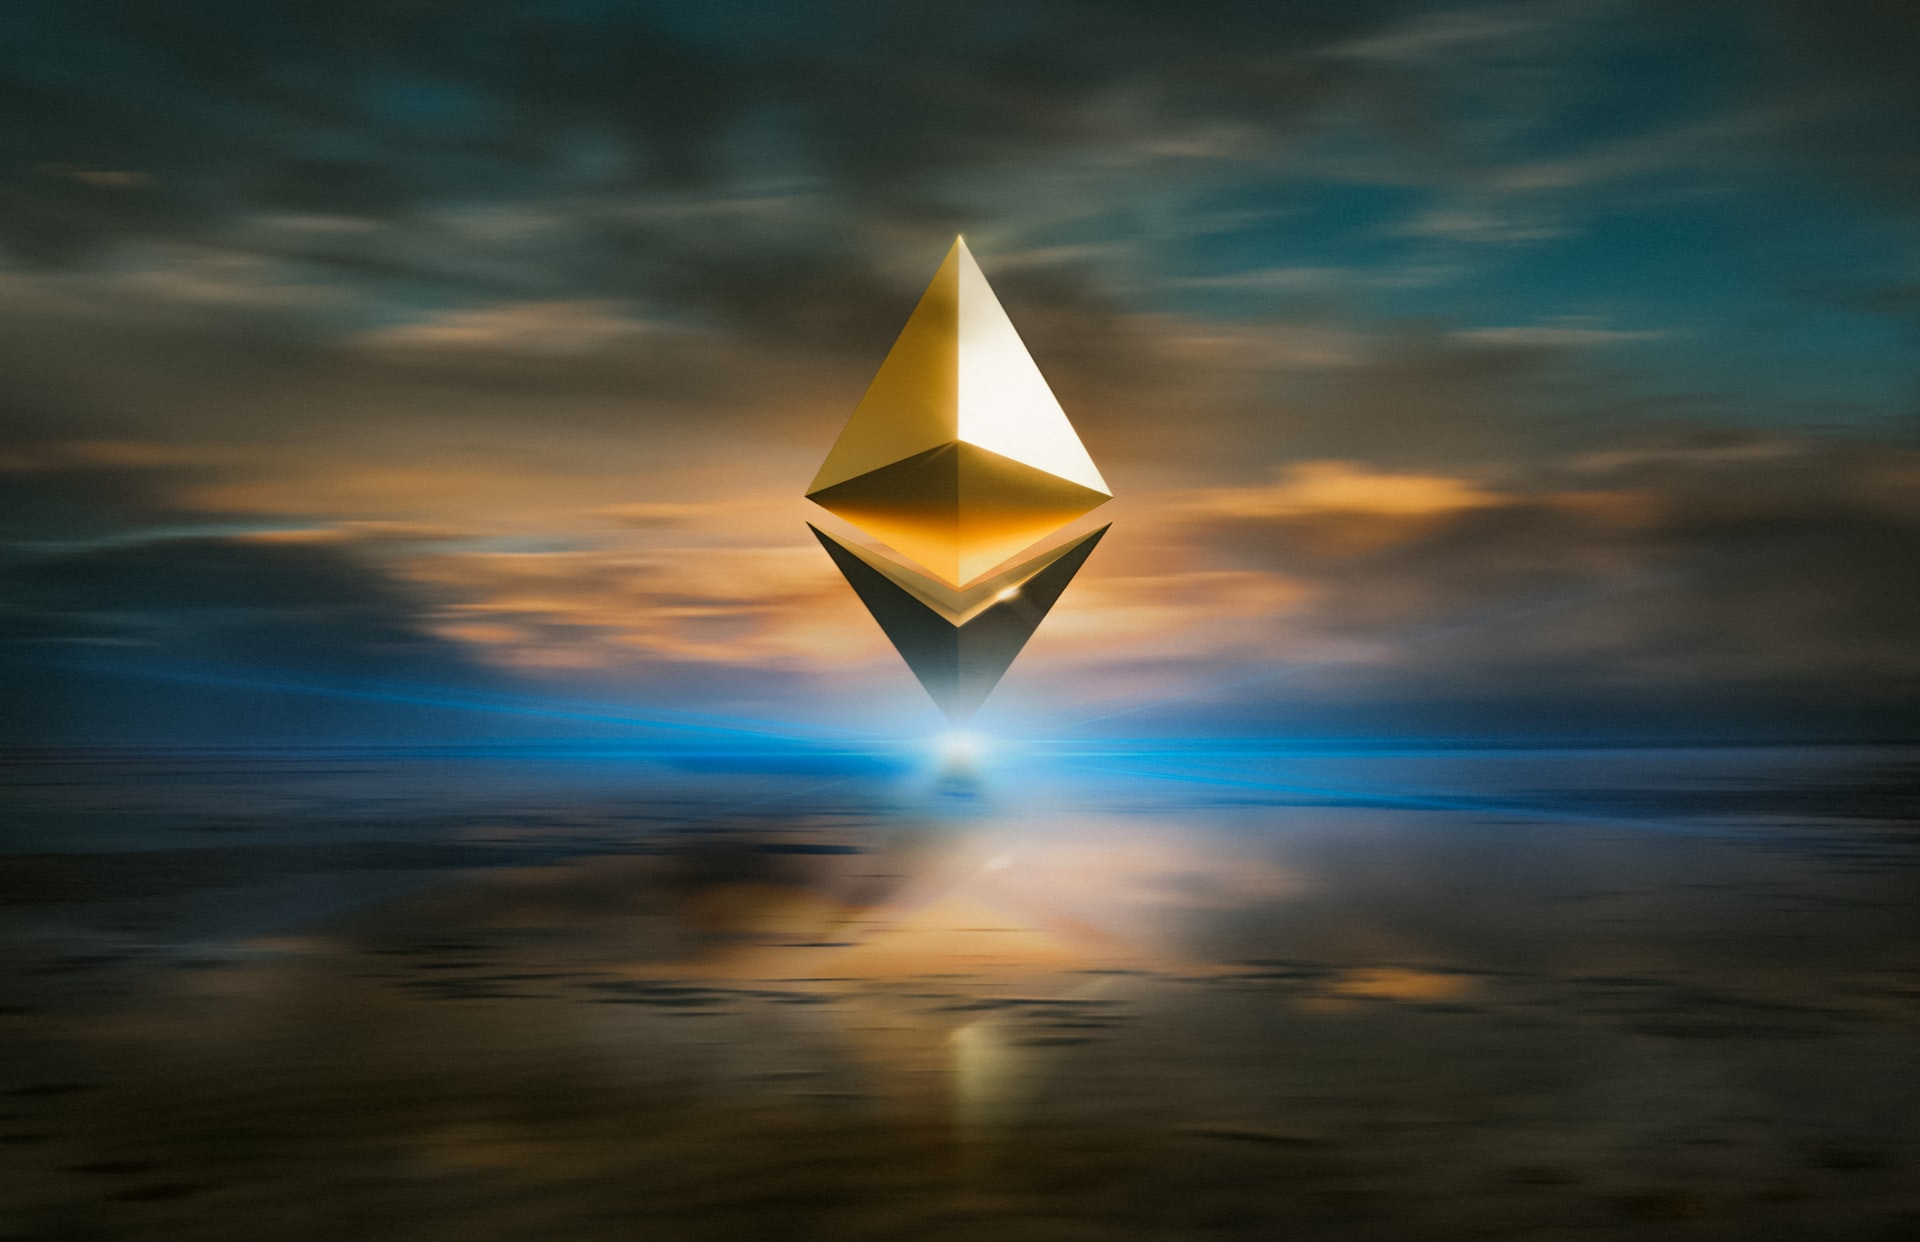 Ethereum: These will be the signs of ETH rallying to a new ATH